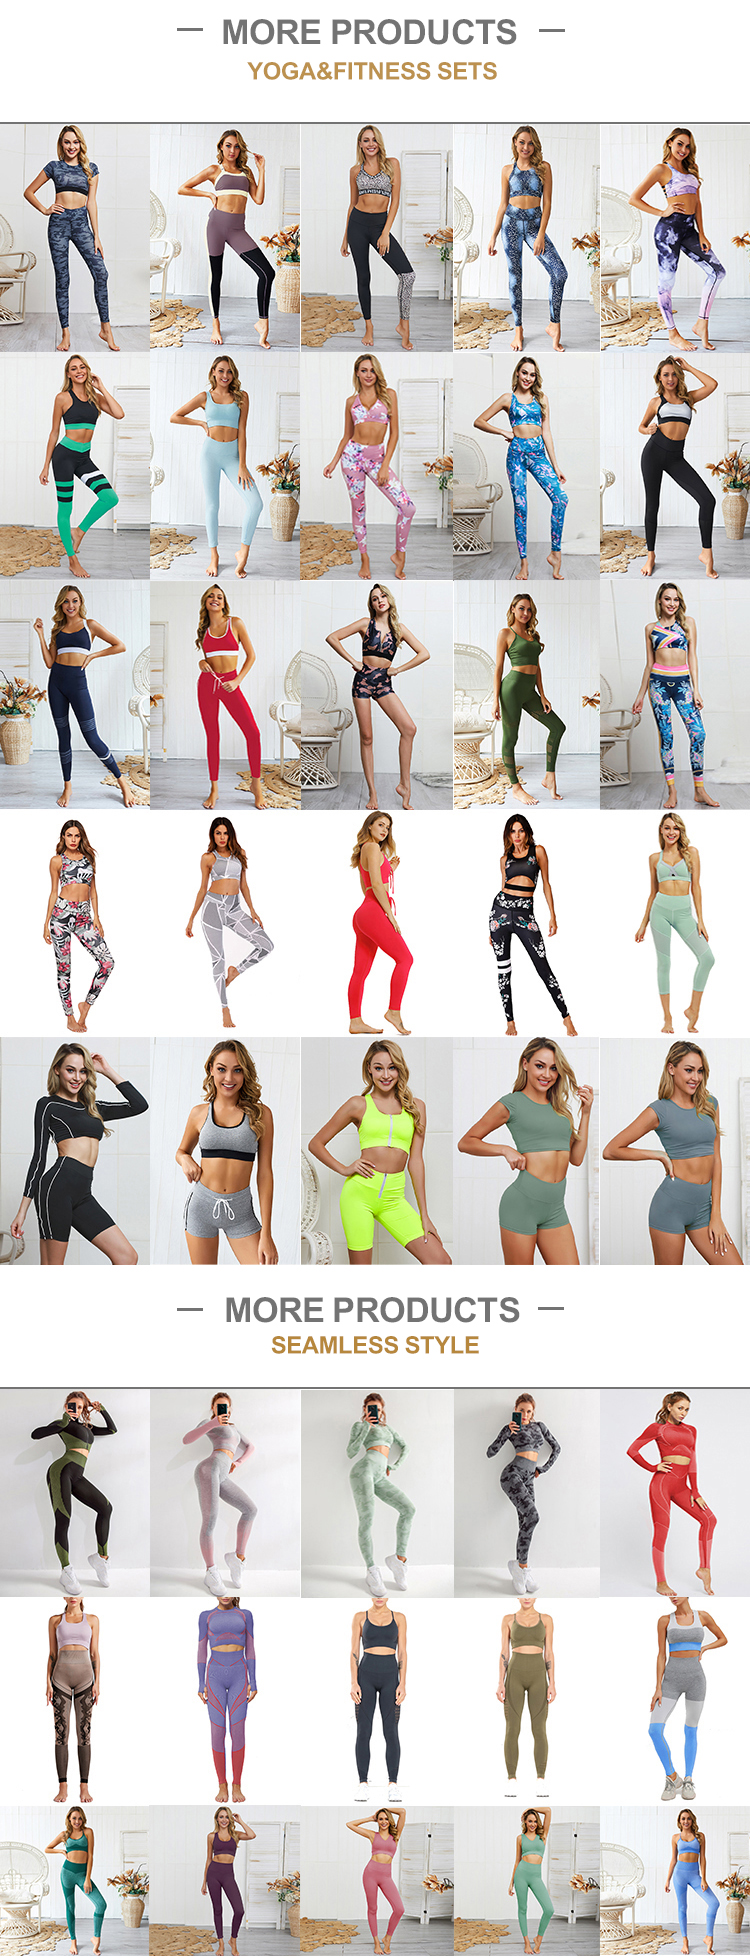 In Stock Athletic Apparel Manufacturers New color Yoga Set Ladies Seamless Sportswear Gym Wear For Girls